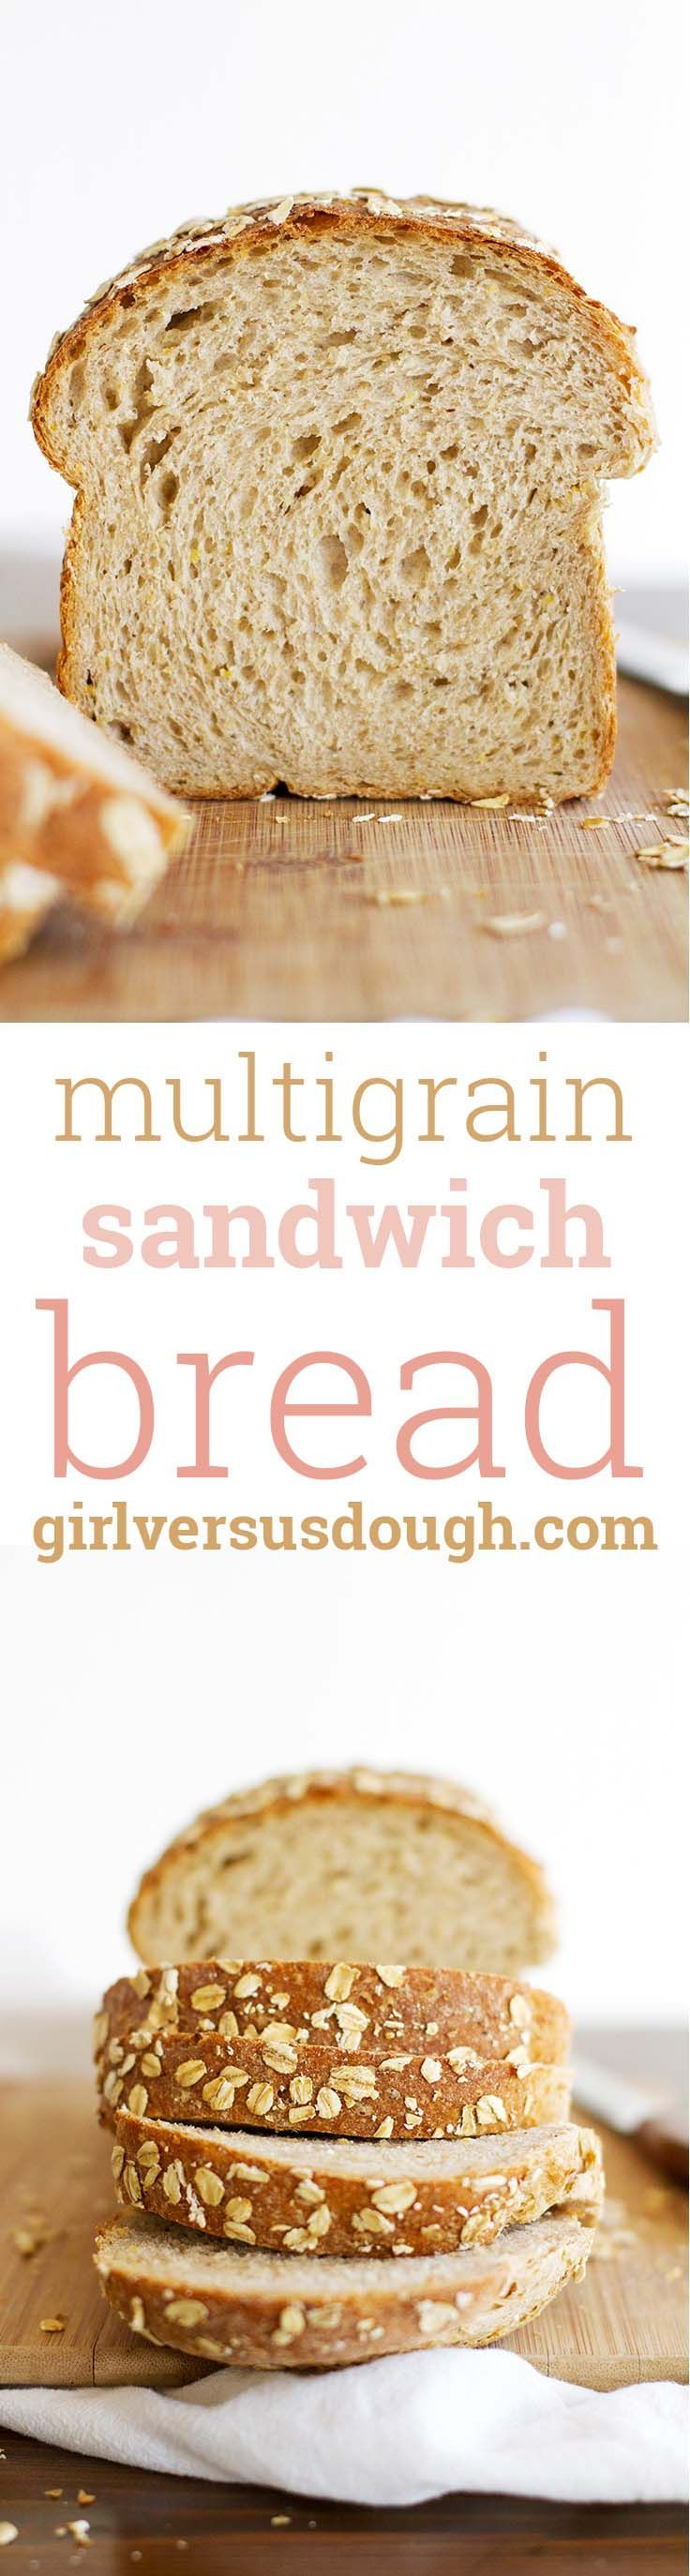 Multigrain Sandwich Bread -- Multigrain cereal, whole wheat flour and honey come together in this soft, tender and delicious sandwich loaf. girlversusdough.com @girlversusdough